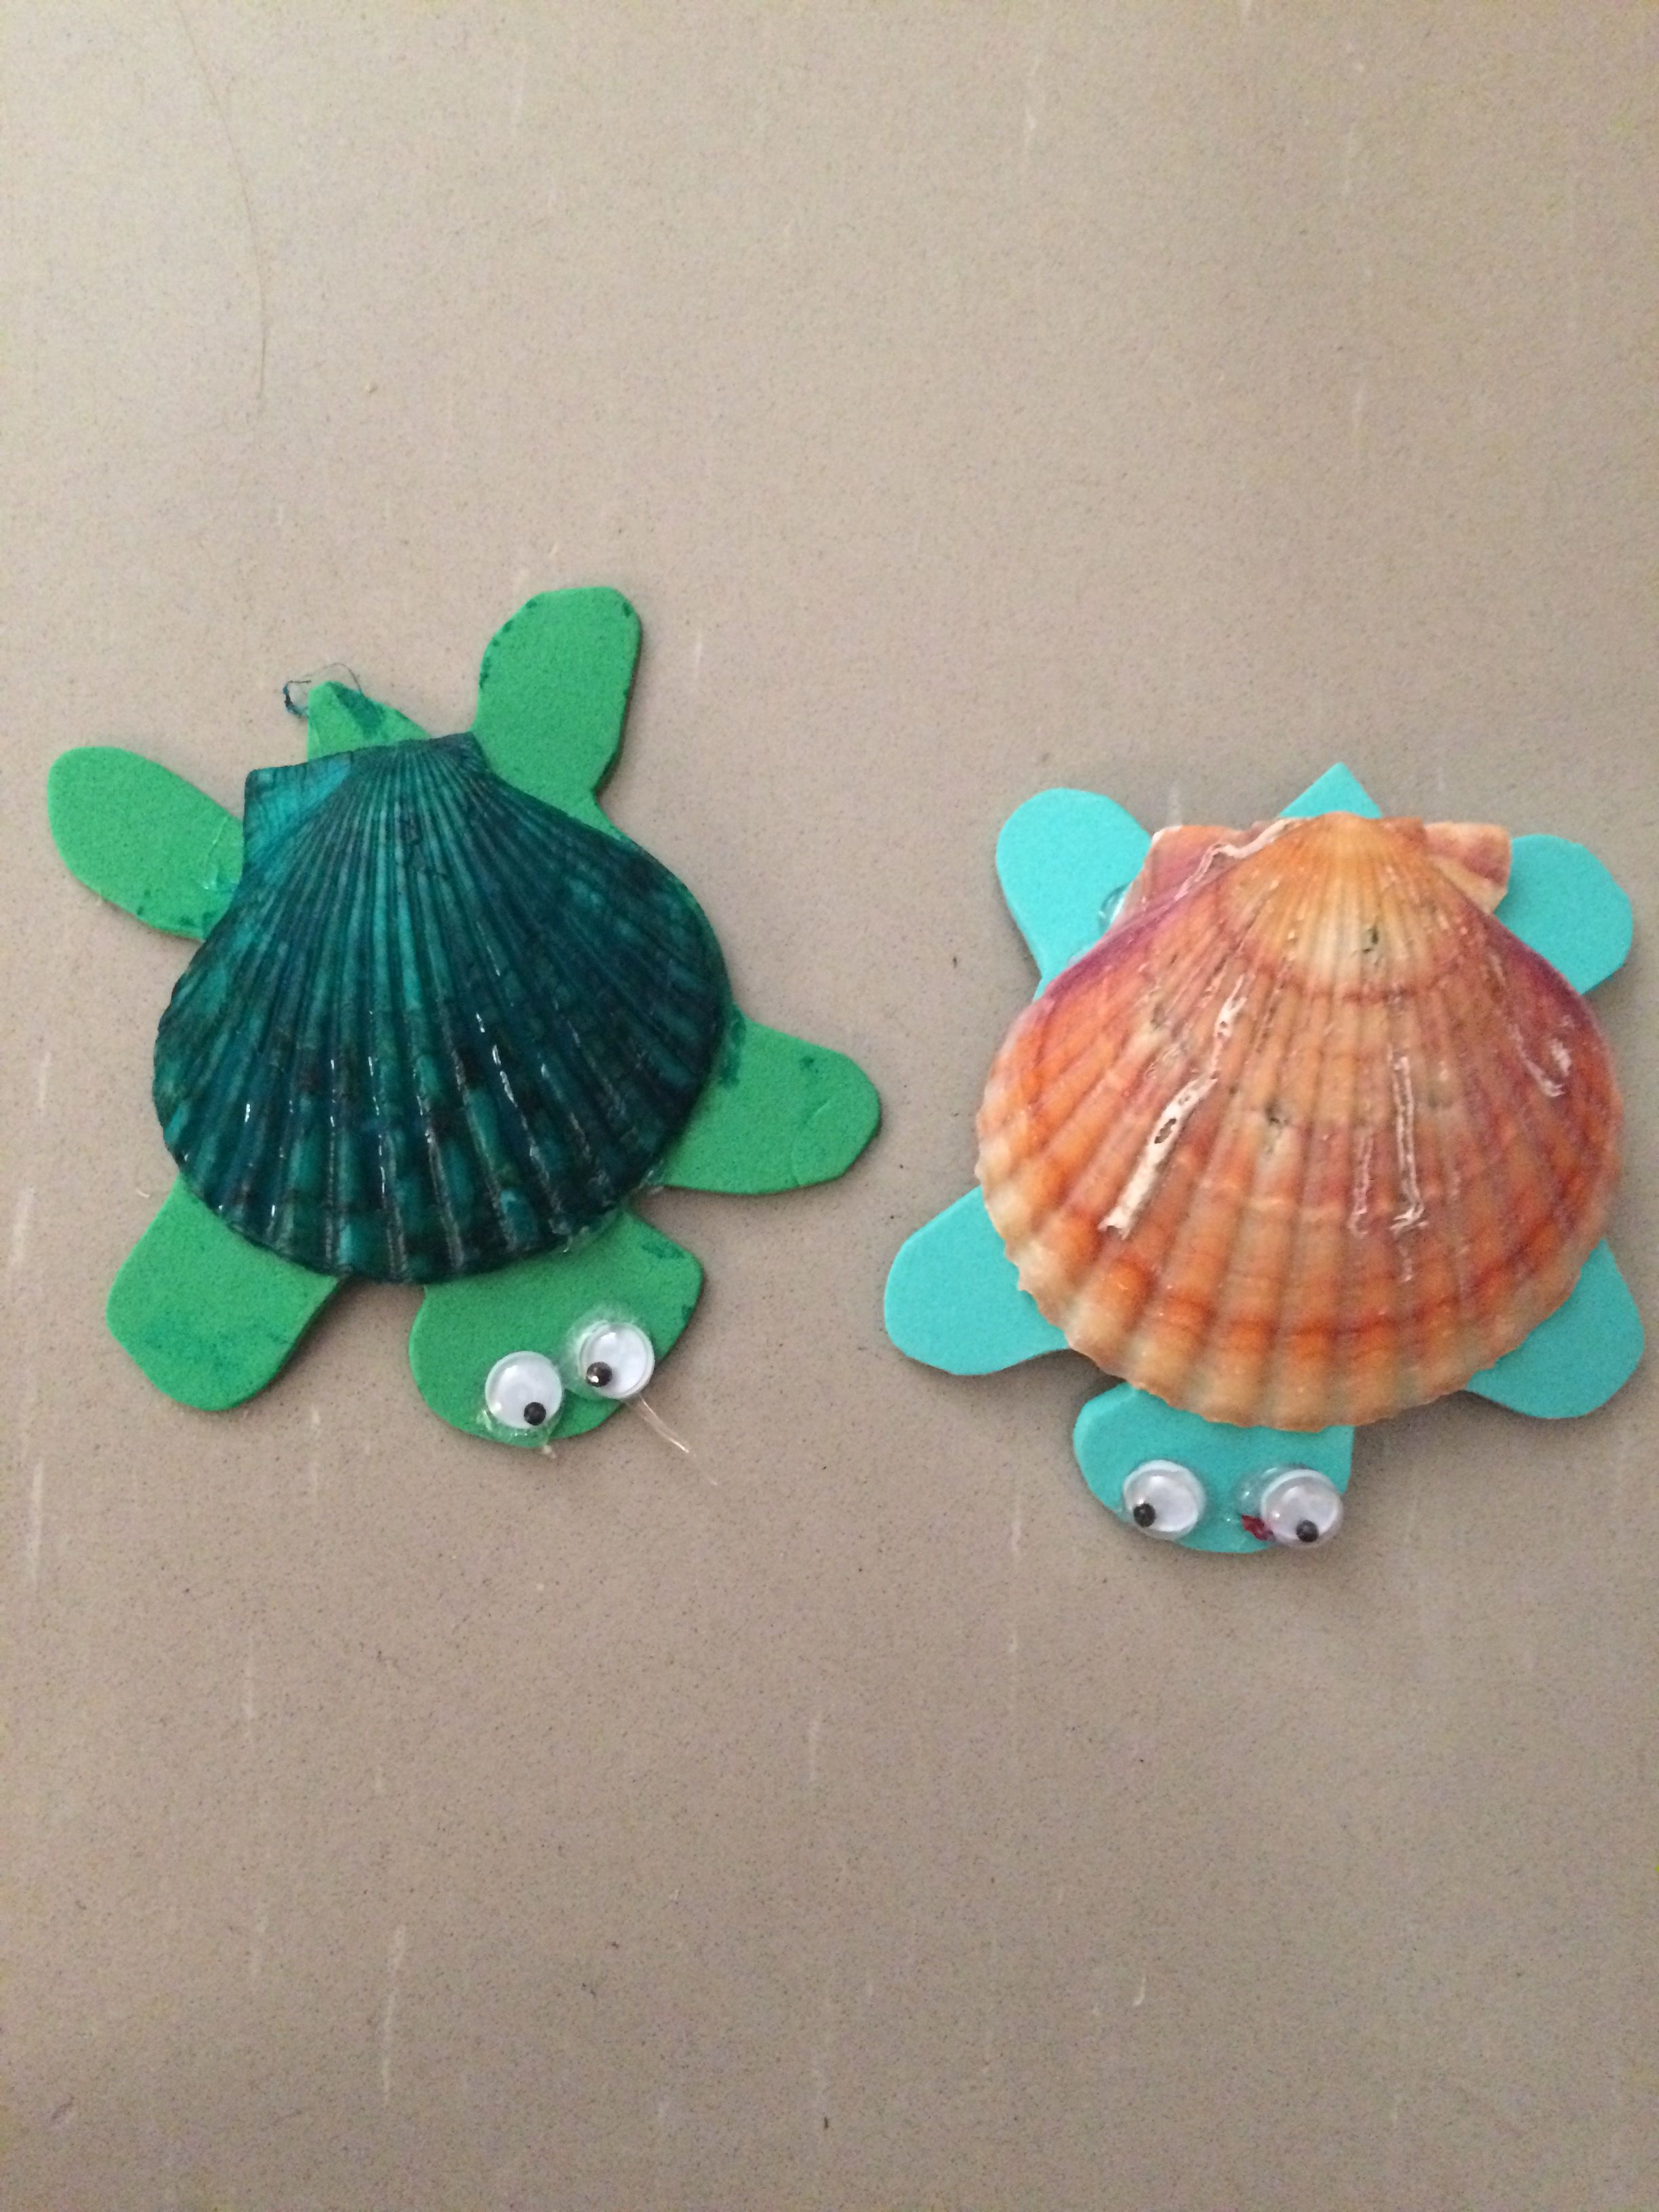 Cute Turtle Craft Made With Sea Shells And Foam Easy For